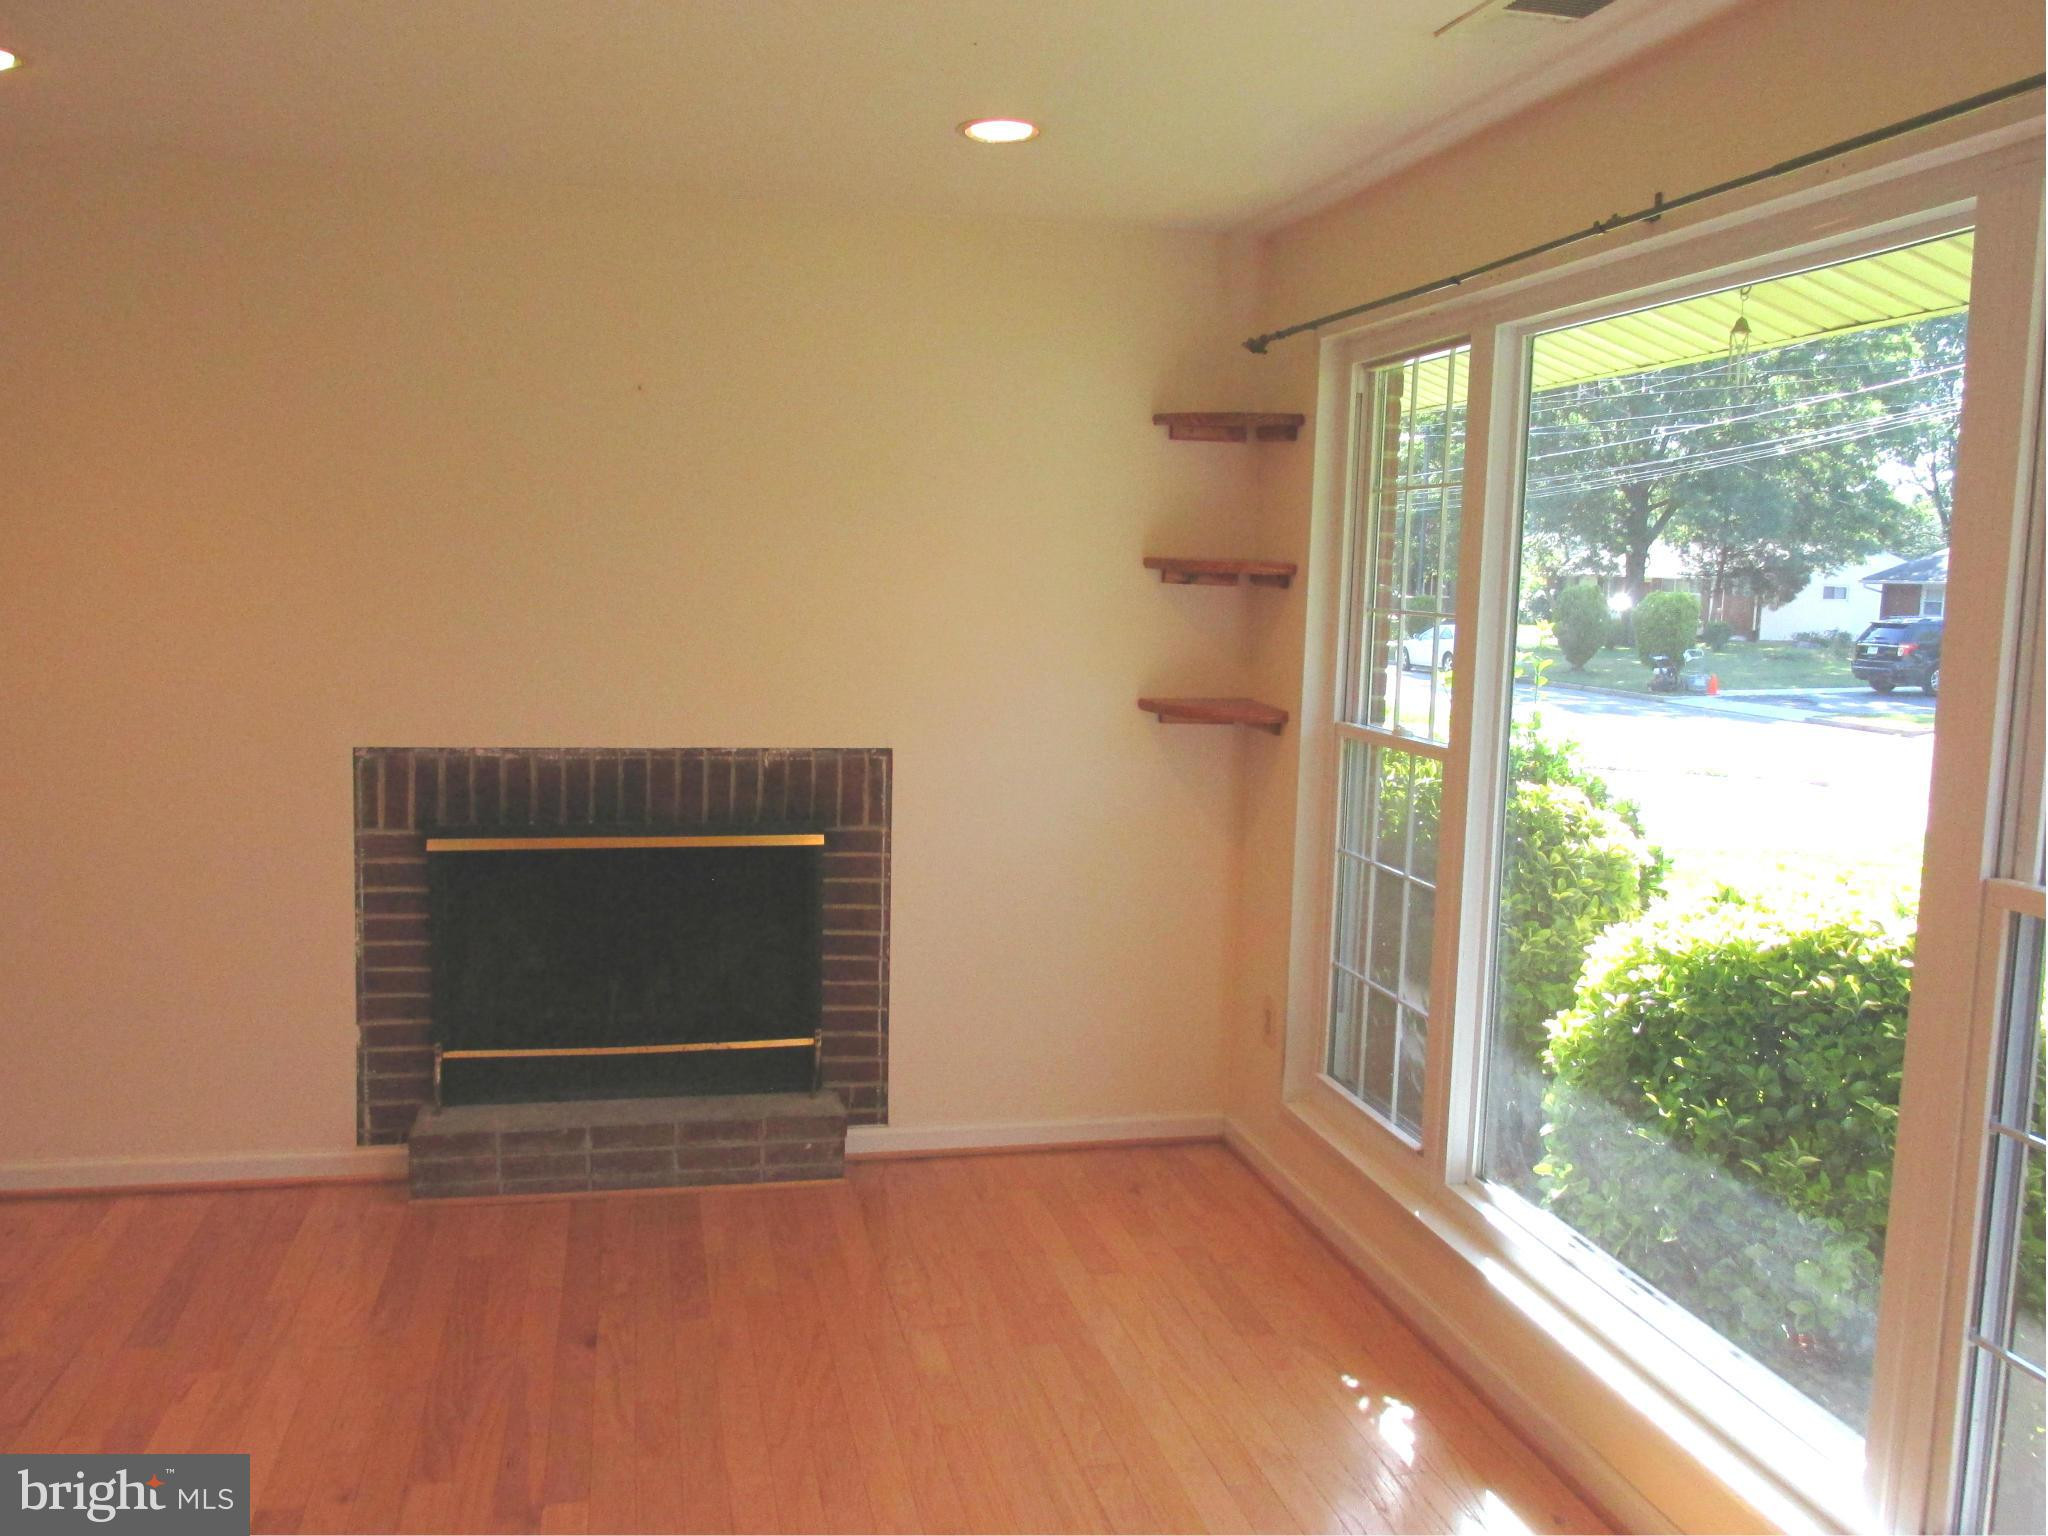 bd hardwood floors of 5008 treetop ln alexandria va 22310 2200 mls 1001260471 www intended for beautiful kitchen with ss appliances granite and oak cabinets french doors lead to patio and large fenced back yard making it perfect for entertaining or